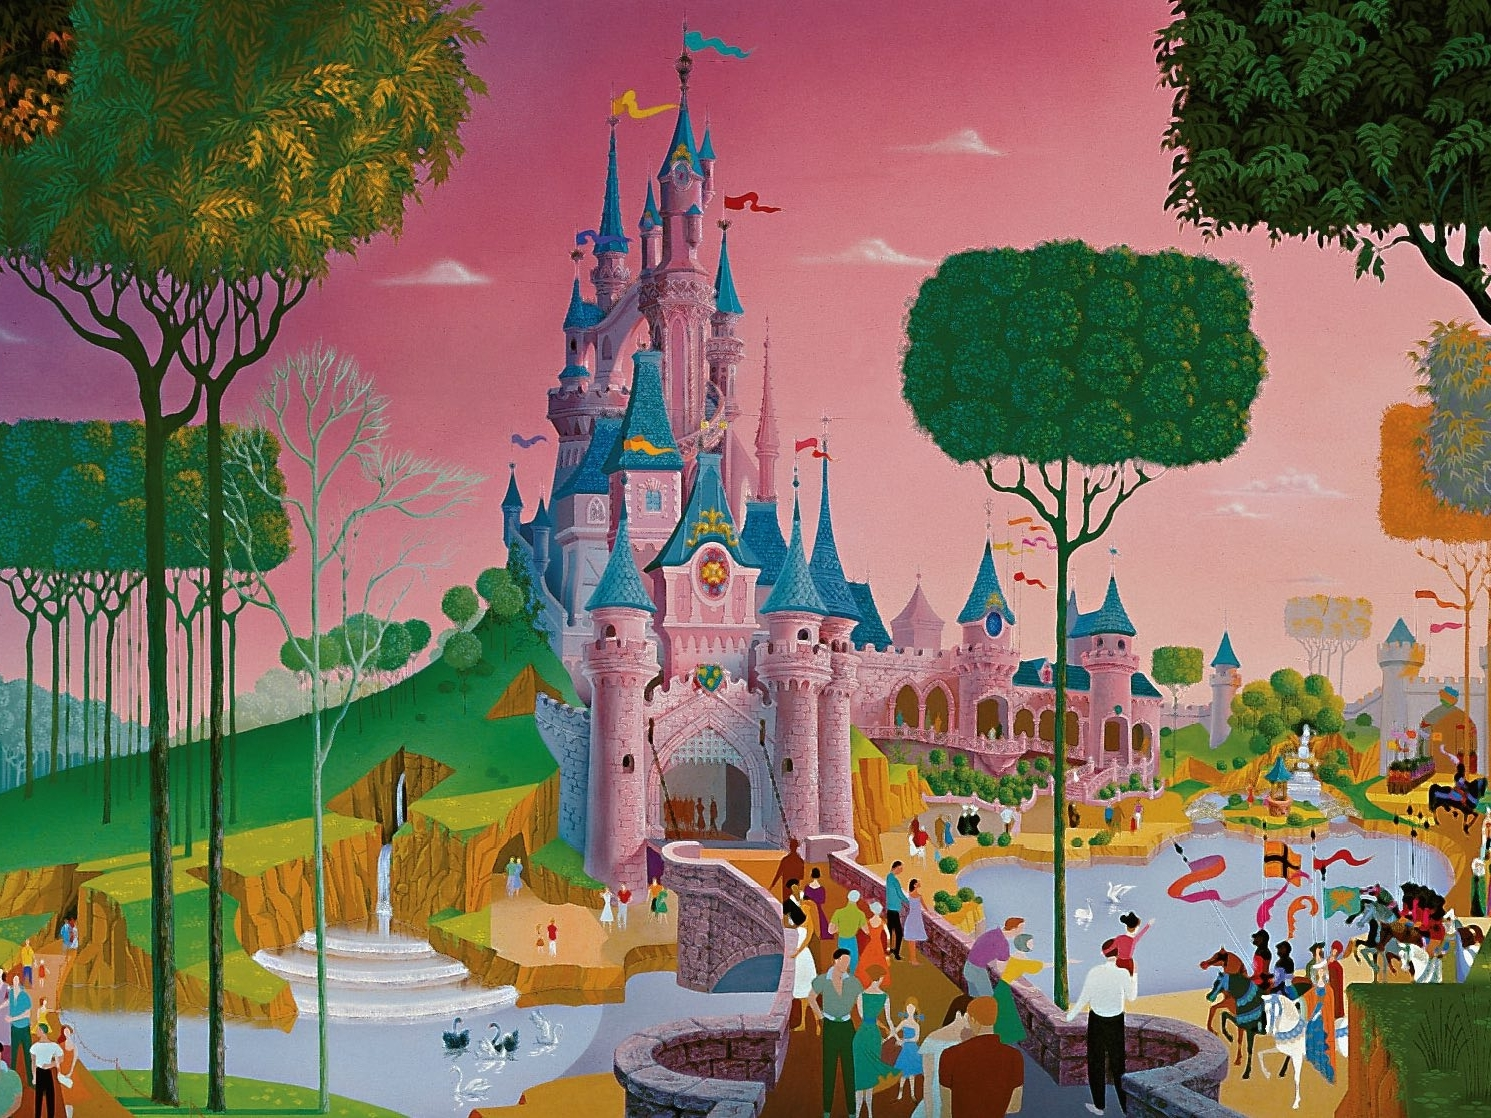 Slide 3 of 41: It was Walt Disney himself who visited the castle and got inspired to create the place where Aurora sleeps, adding elements from other nearby castles.